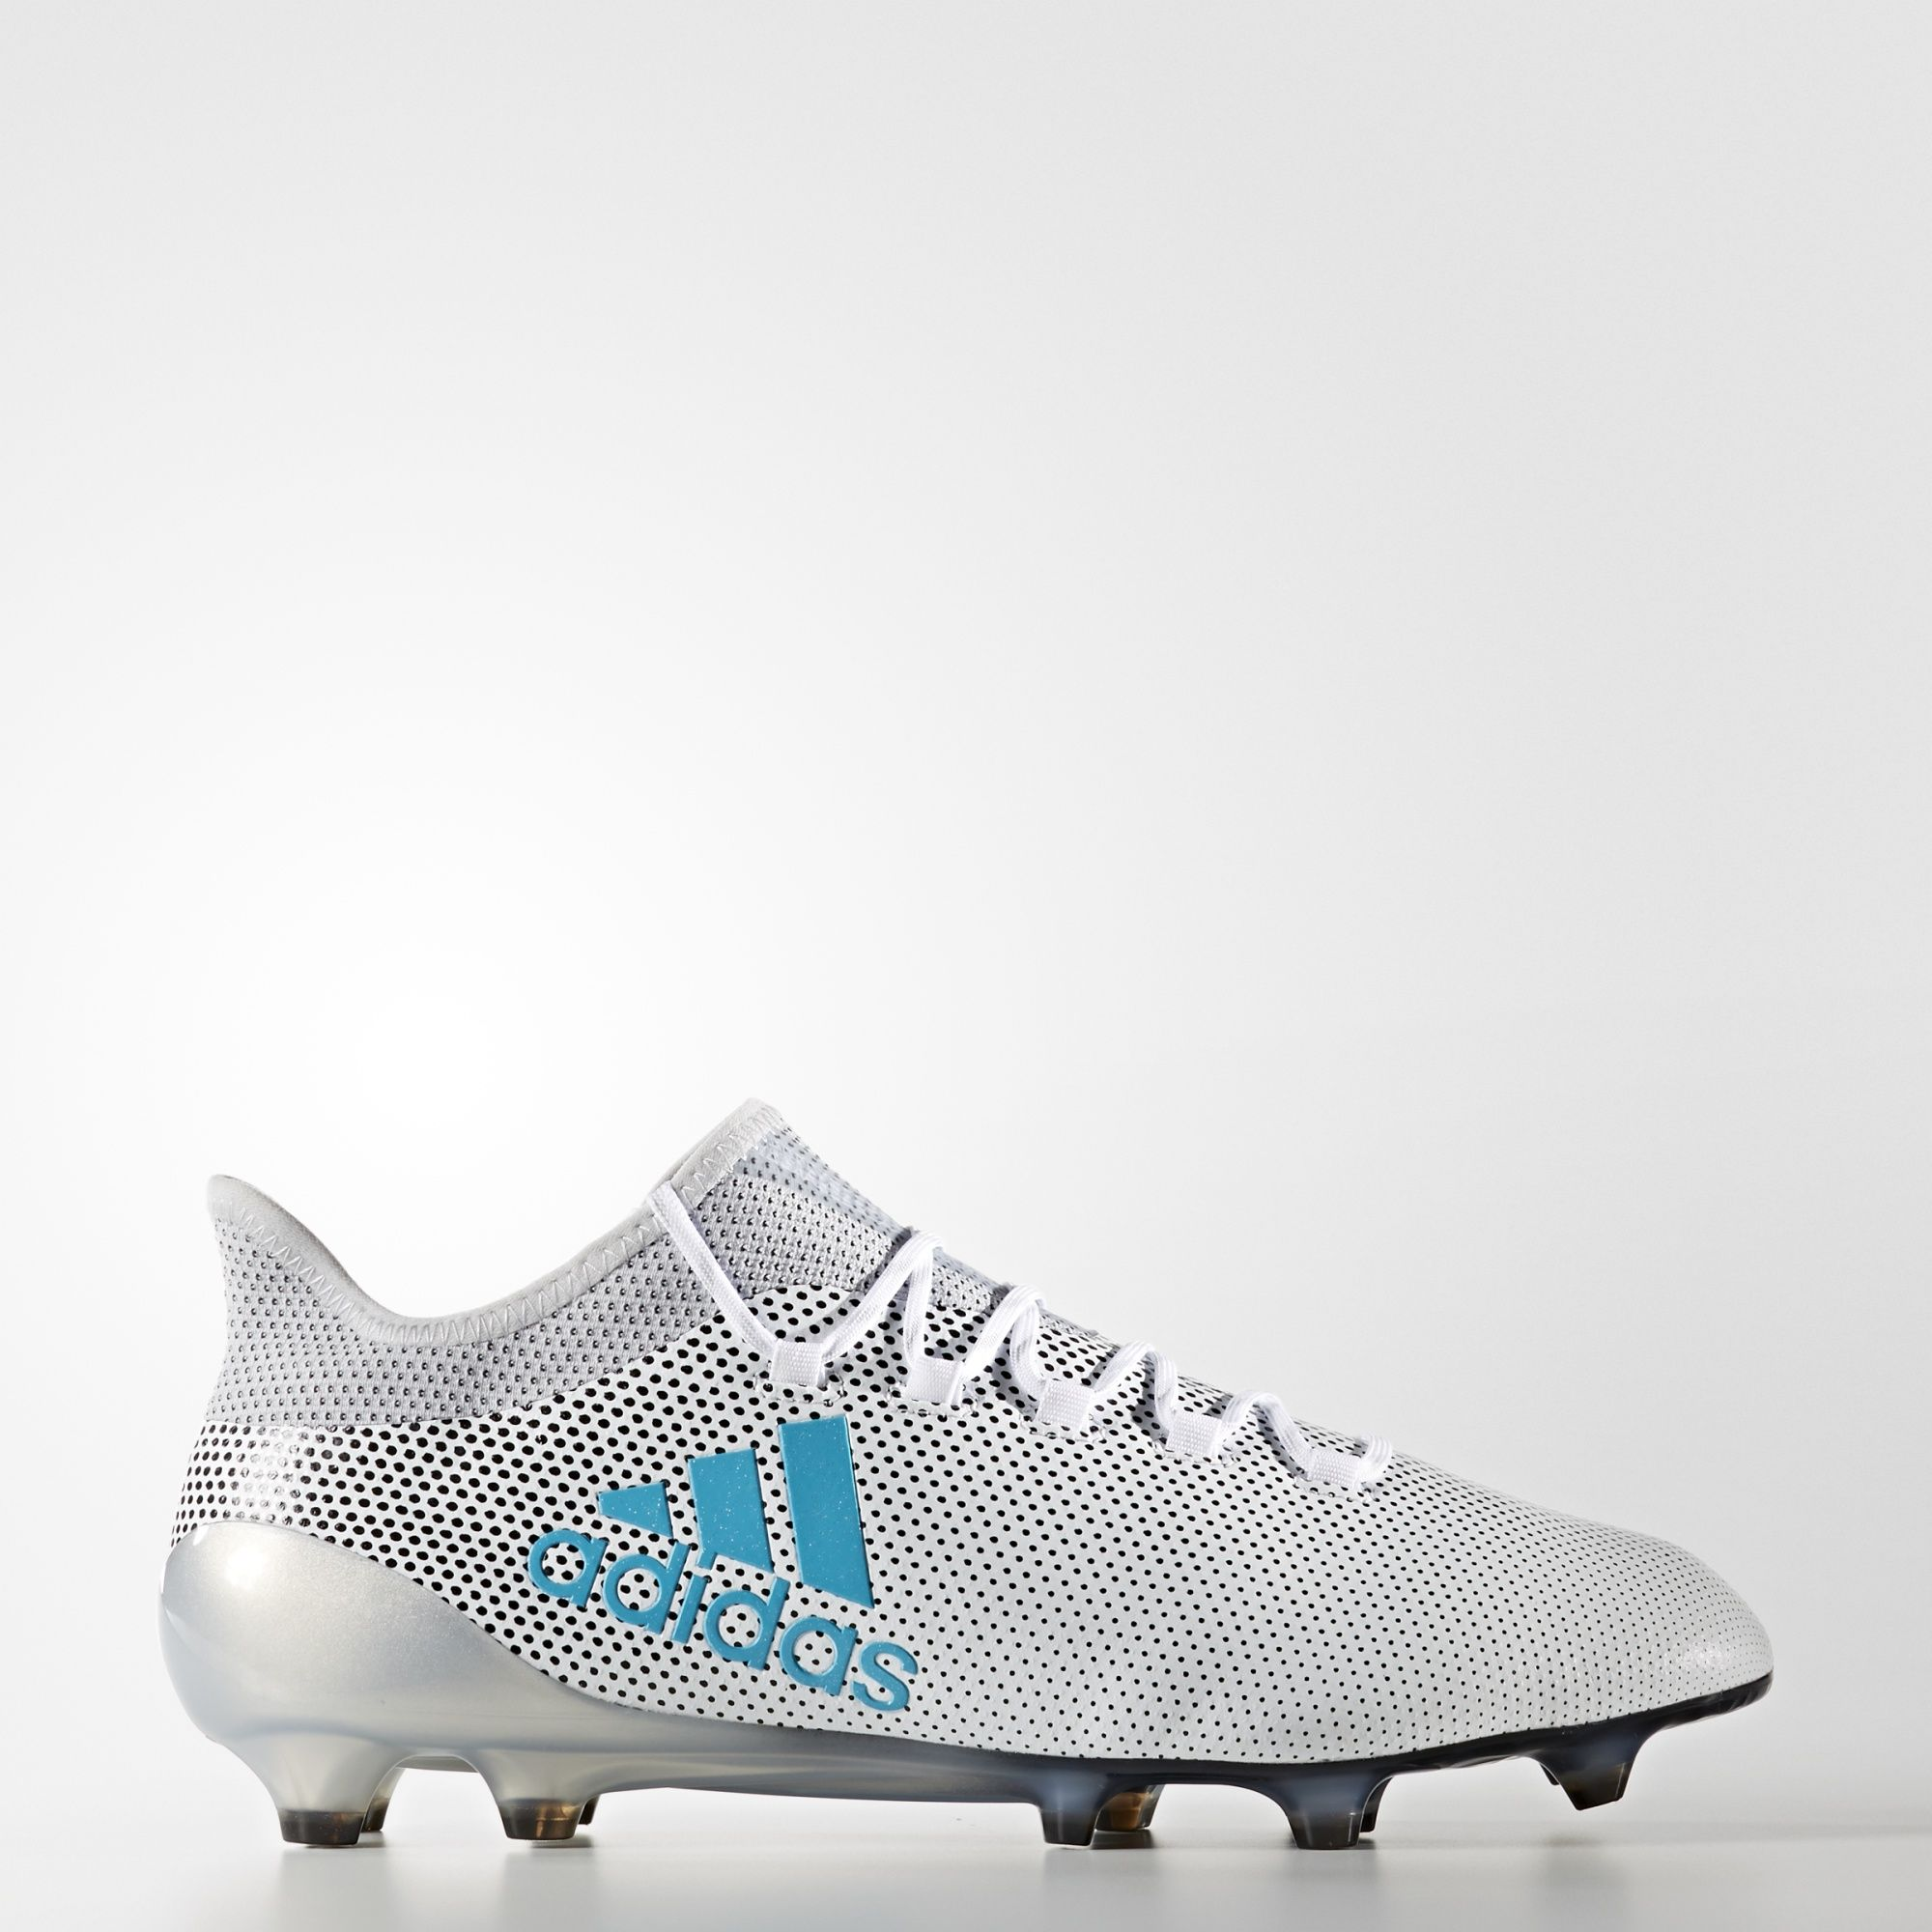 2f9aa5568 ... raised dots applied to the upper that keeps the ball glued to your  feetUnleash speed and traction on firm ground (dry